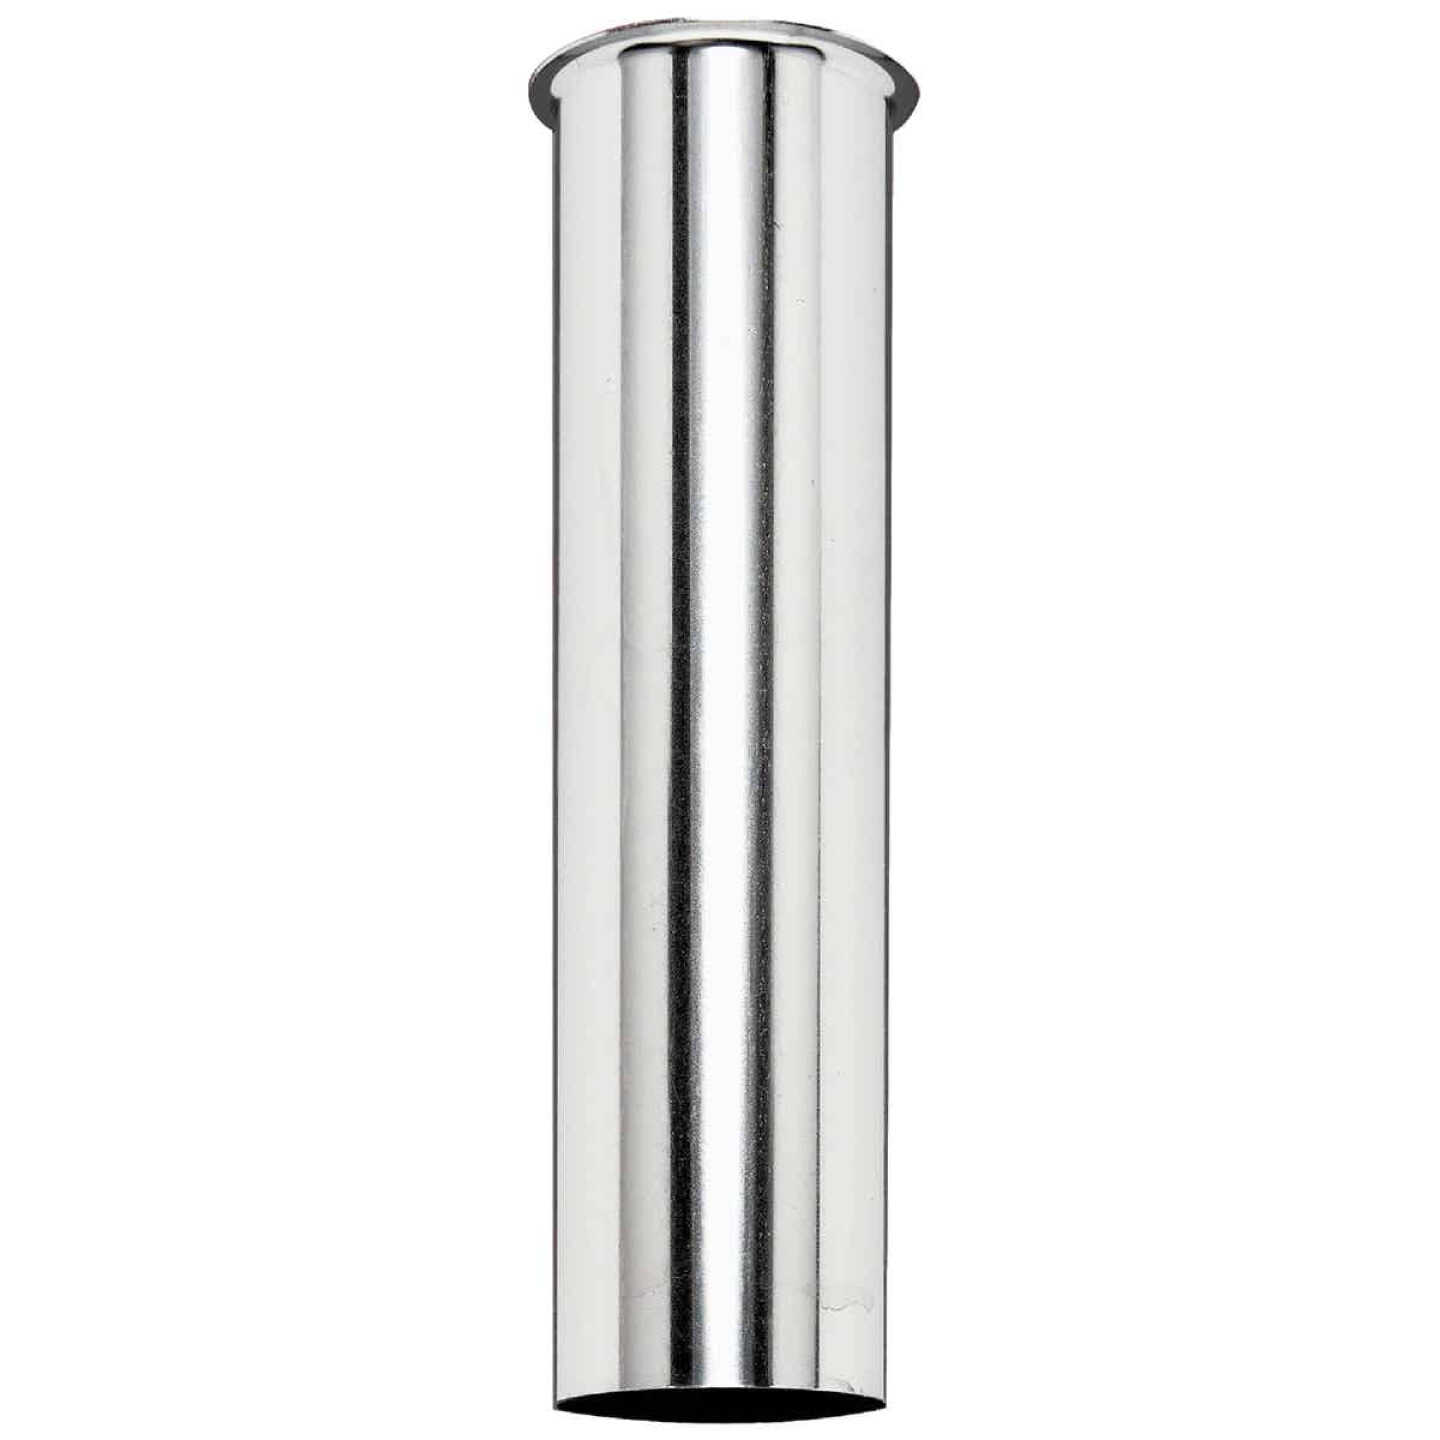 Do it 1-1/2 In. x 6 In. Chrome Plated Tailpiece Image 1